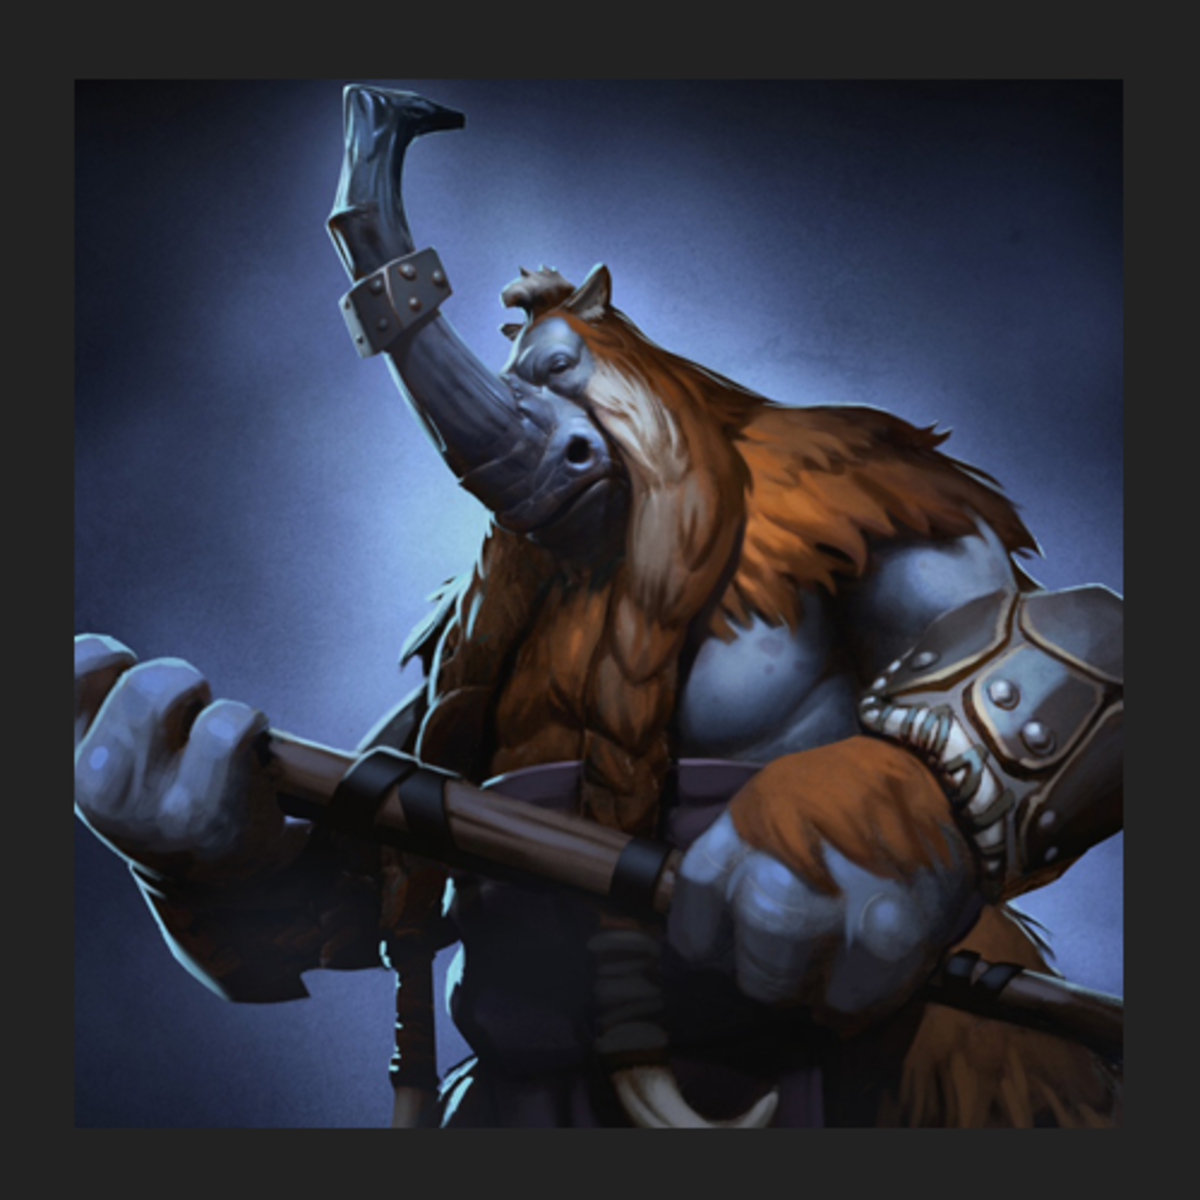 Magnus the Magnataur DOTA 2 adaptation